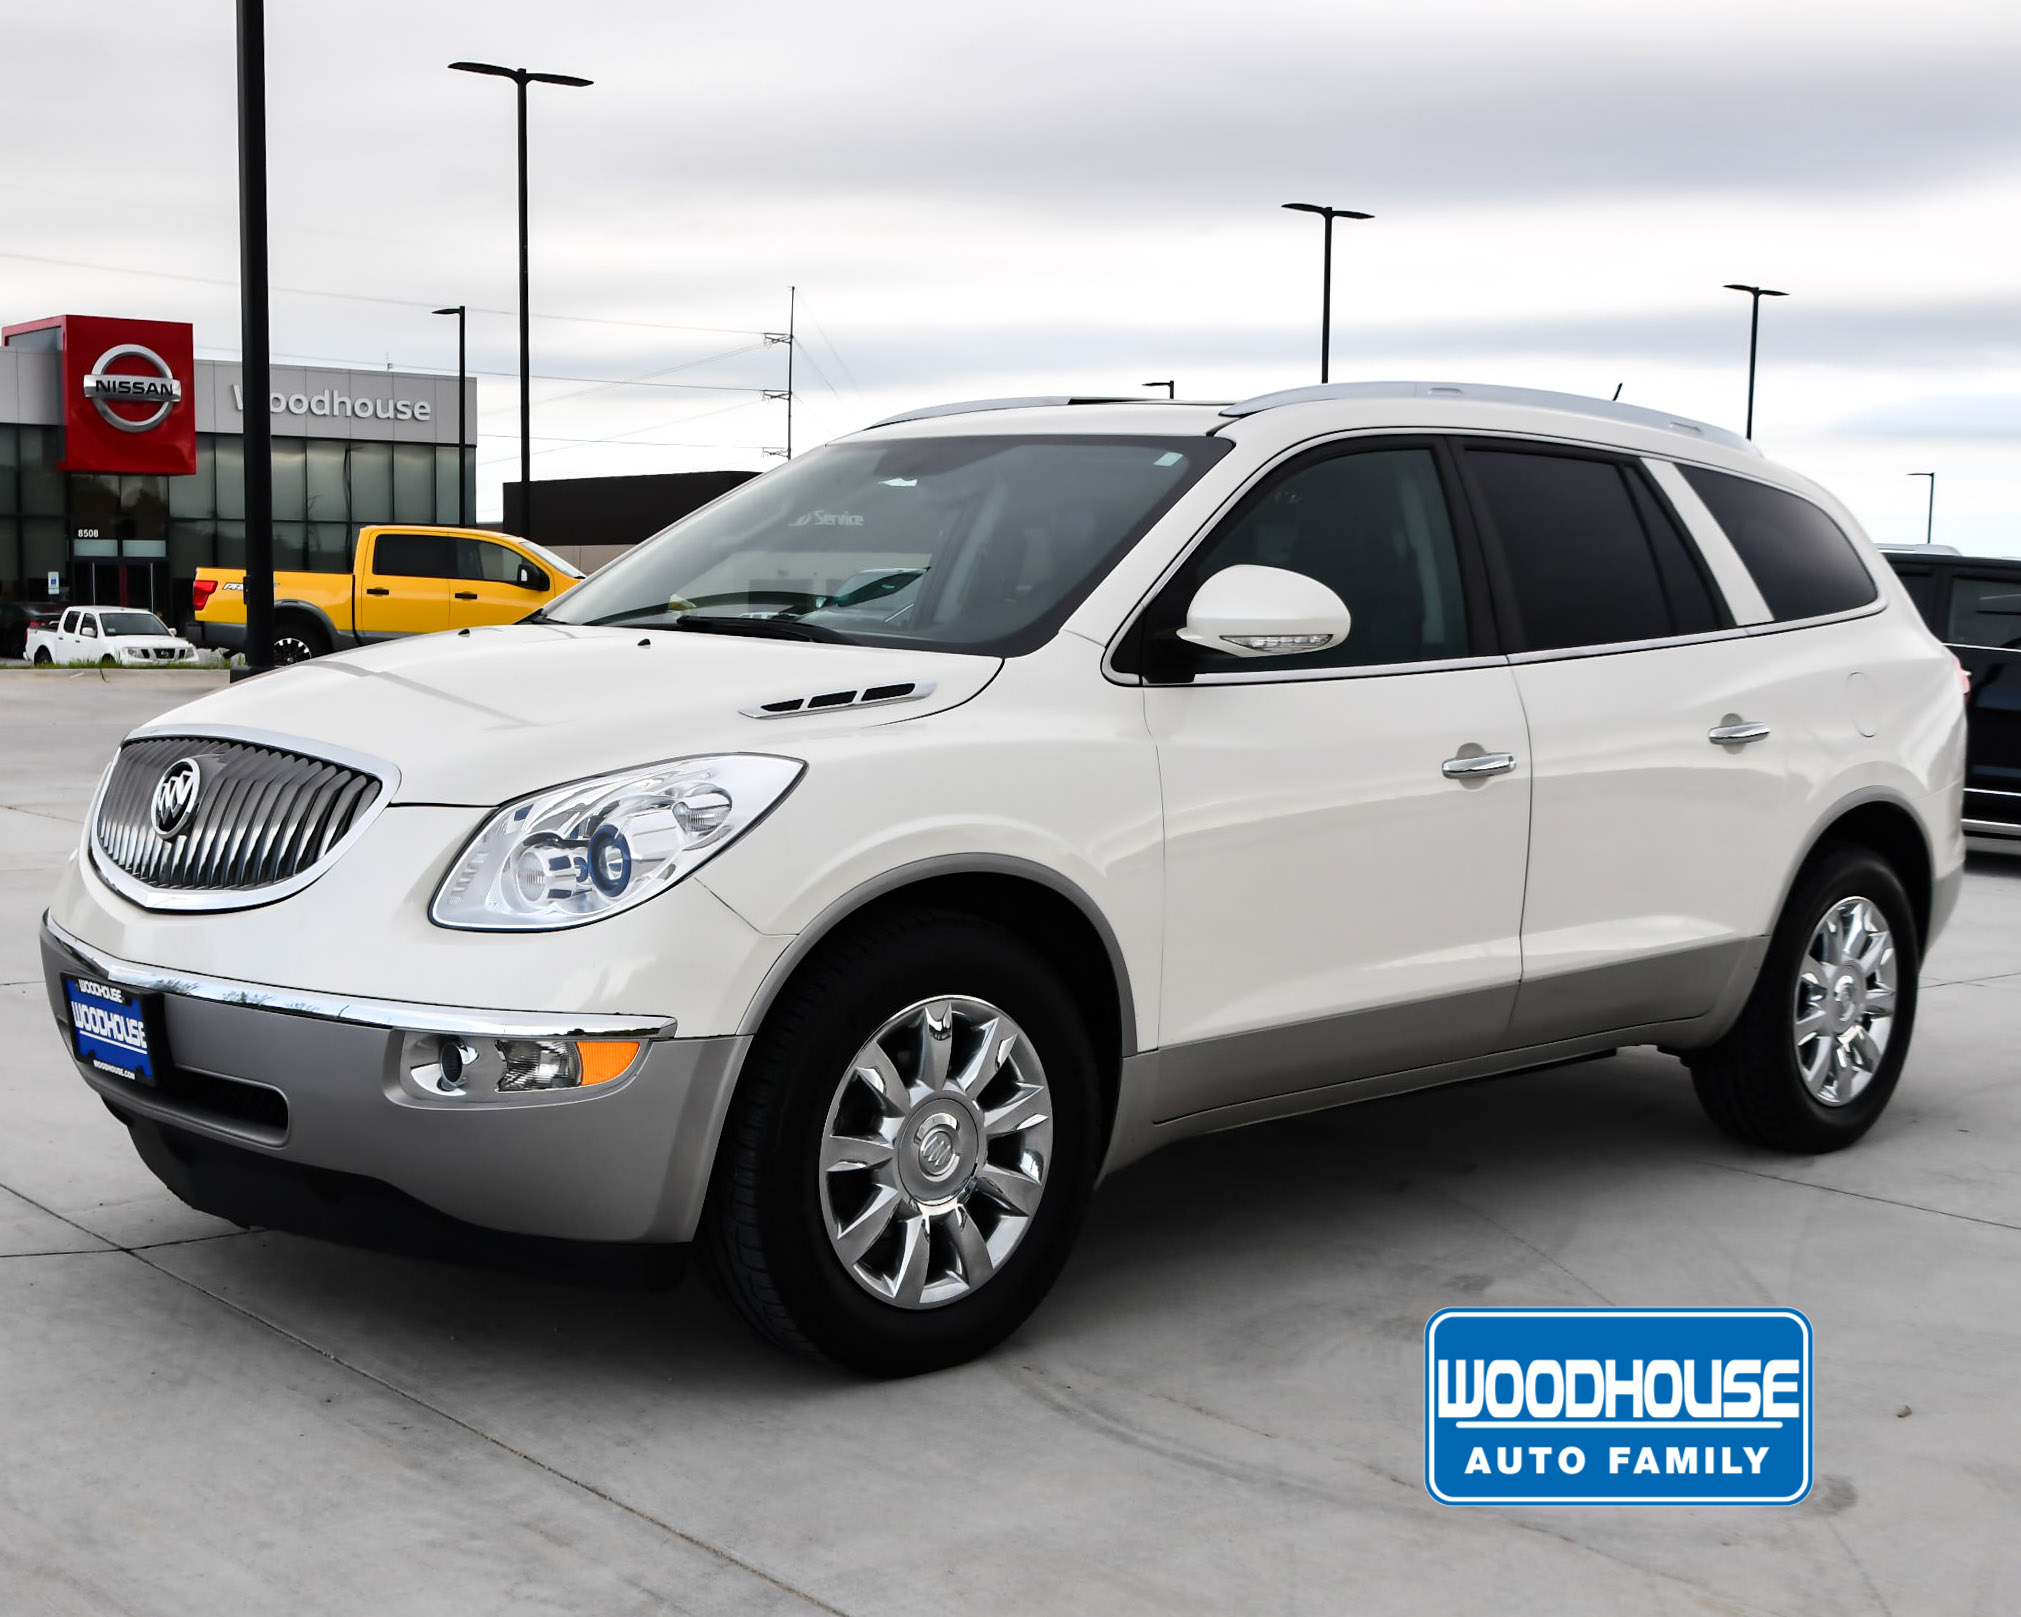 2012 Buick Enclave For Sale >> Woodhouse Used 2012 Buick Enclave For Sale Nissan Woodhouse